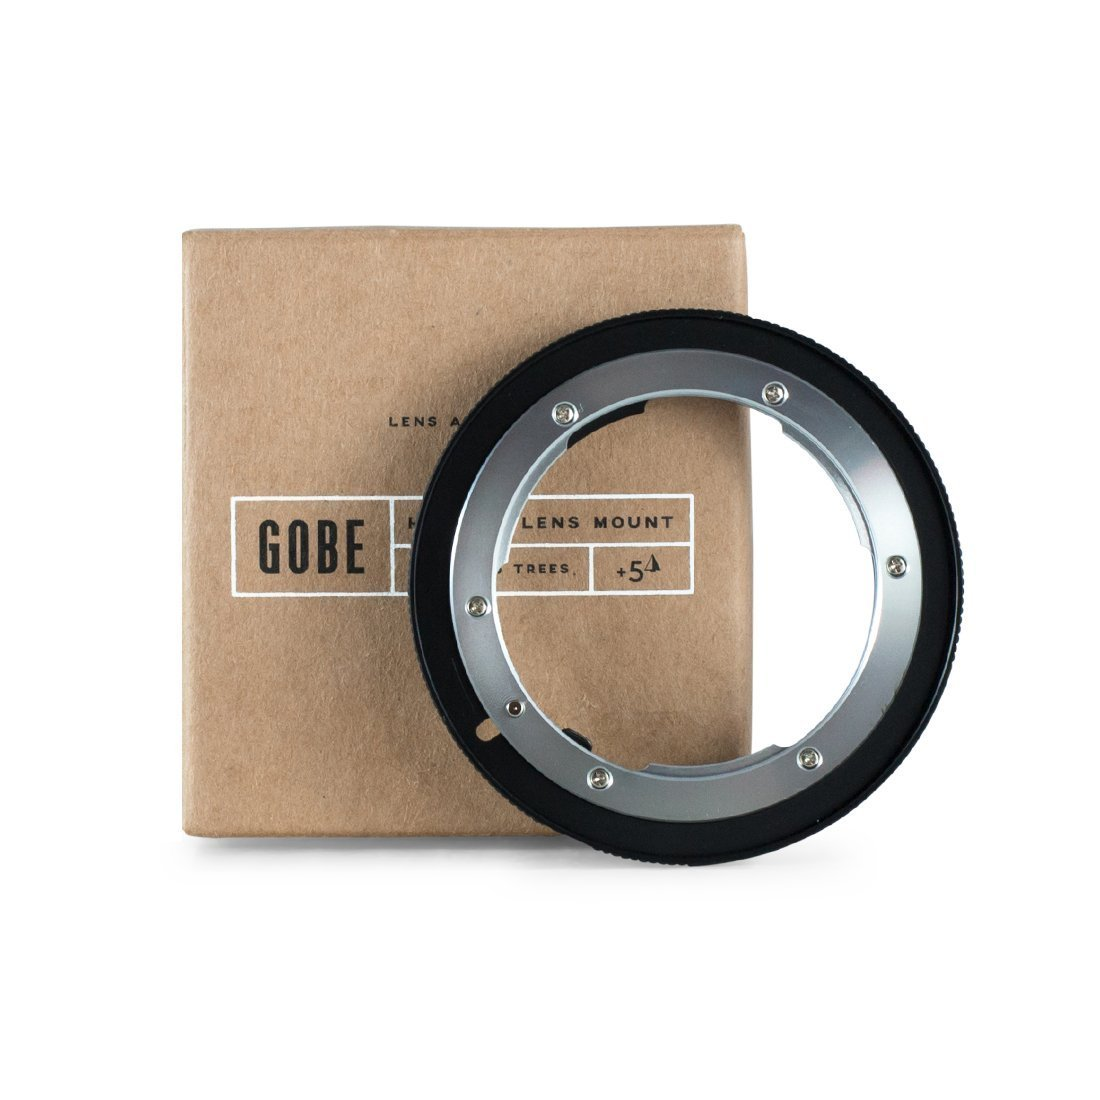 Gobe Lens Adapter: Compatible with Nikon F-mount Lens and Canon EOS (EF/EF-S) Camera Body